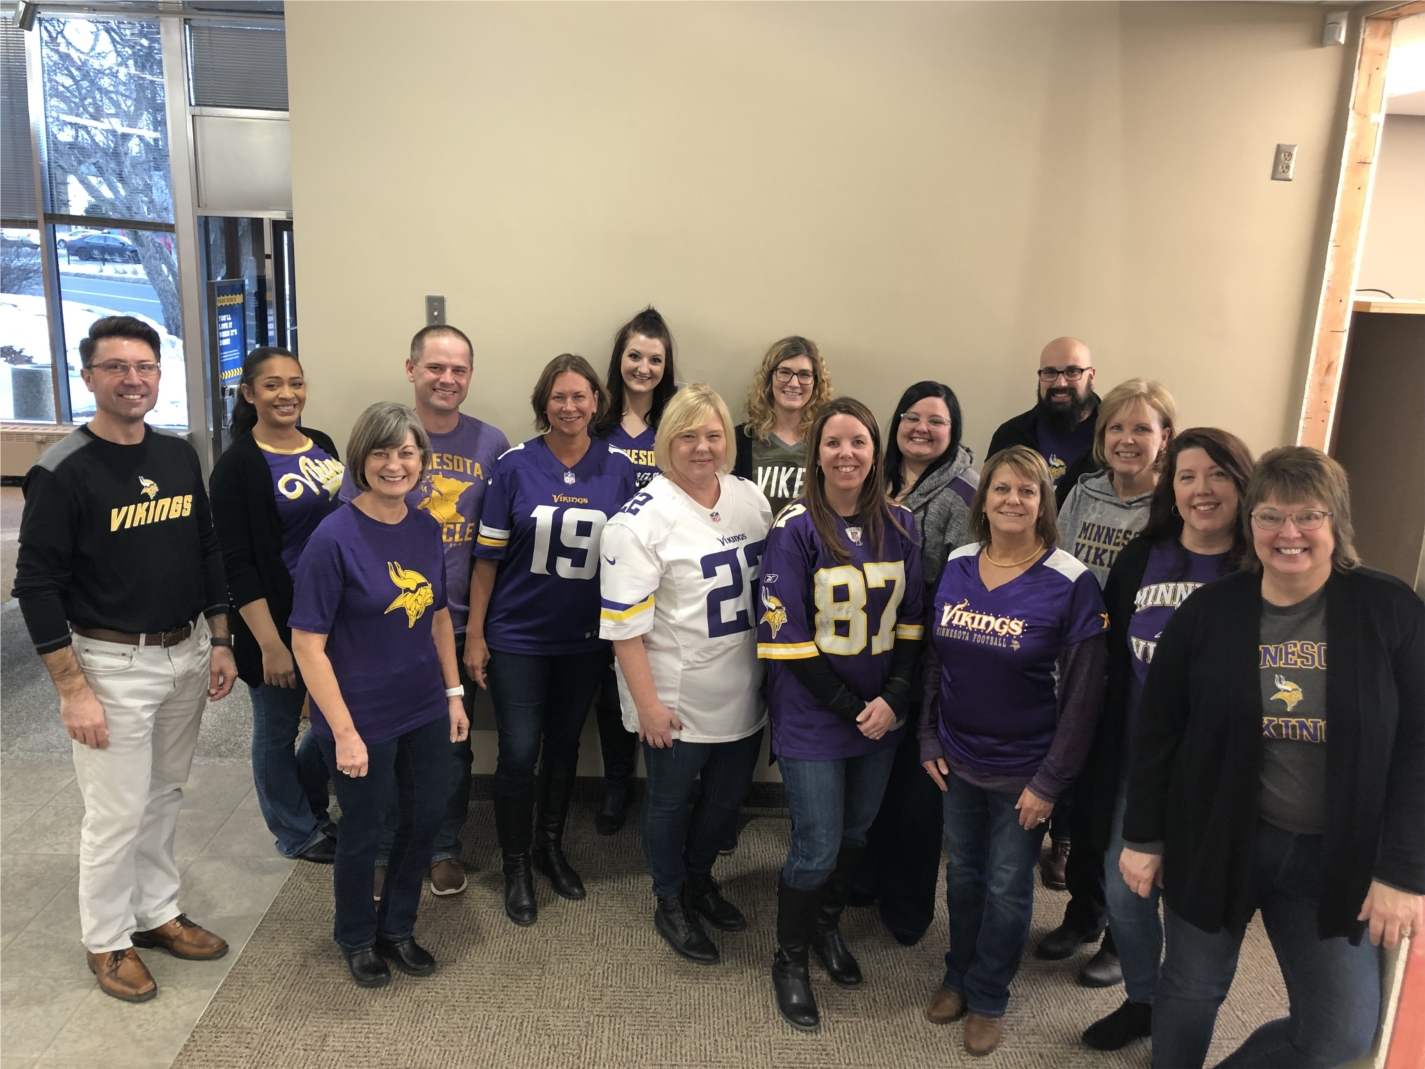 Northeast Bank employees cheered on the Minnesota Vikings with jeans and jerseys!